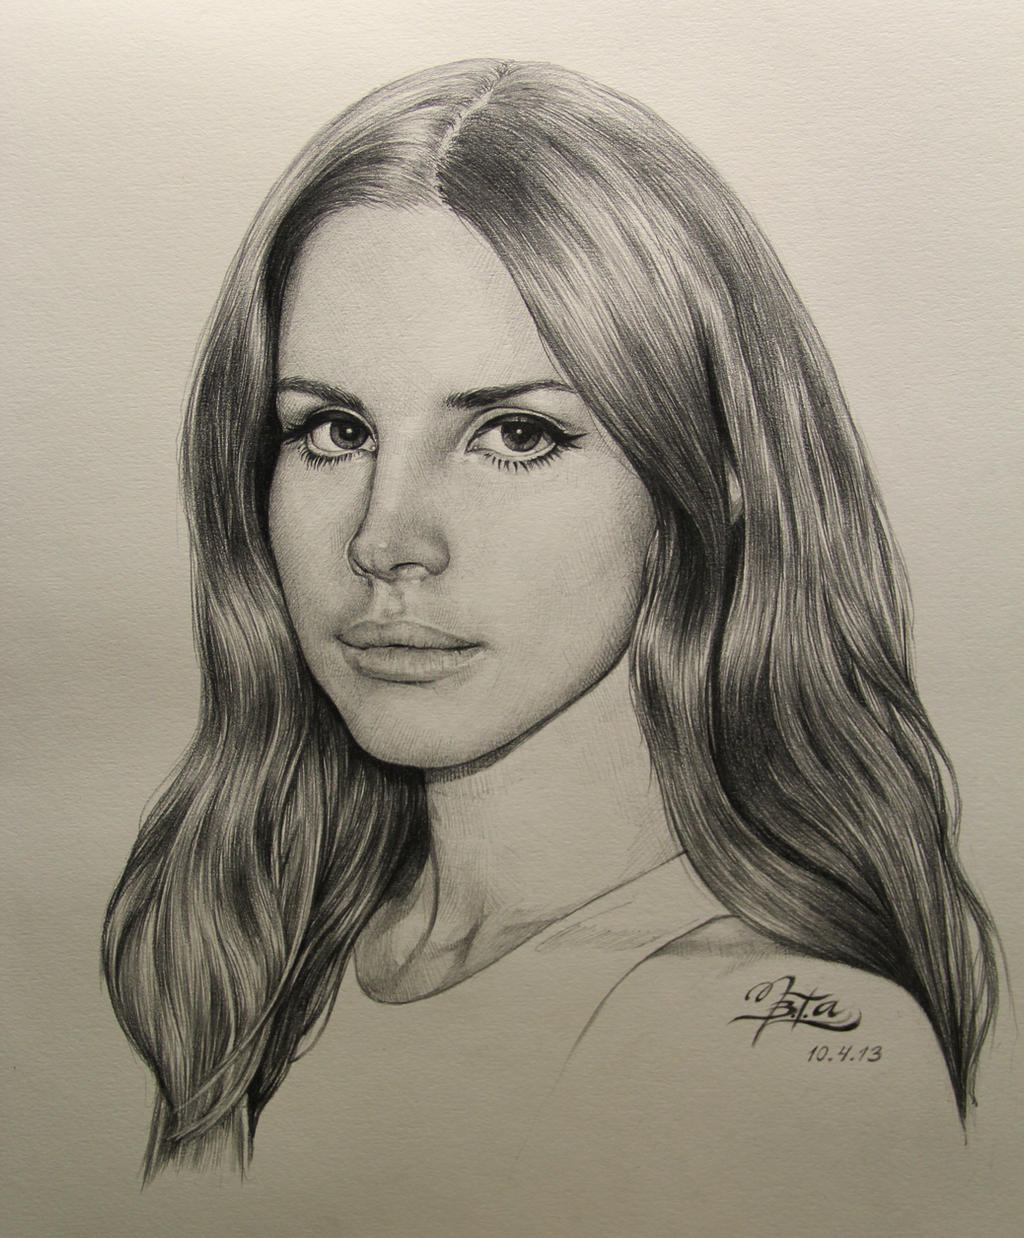 Lana Del Rey by chingybta on DeviantArt